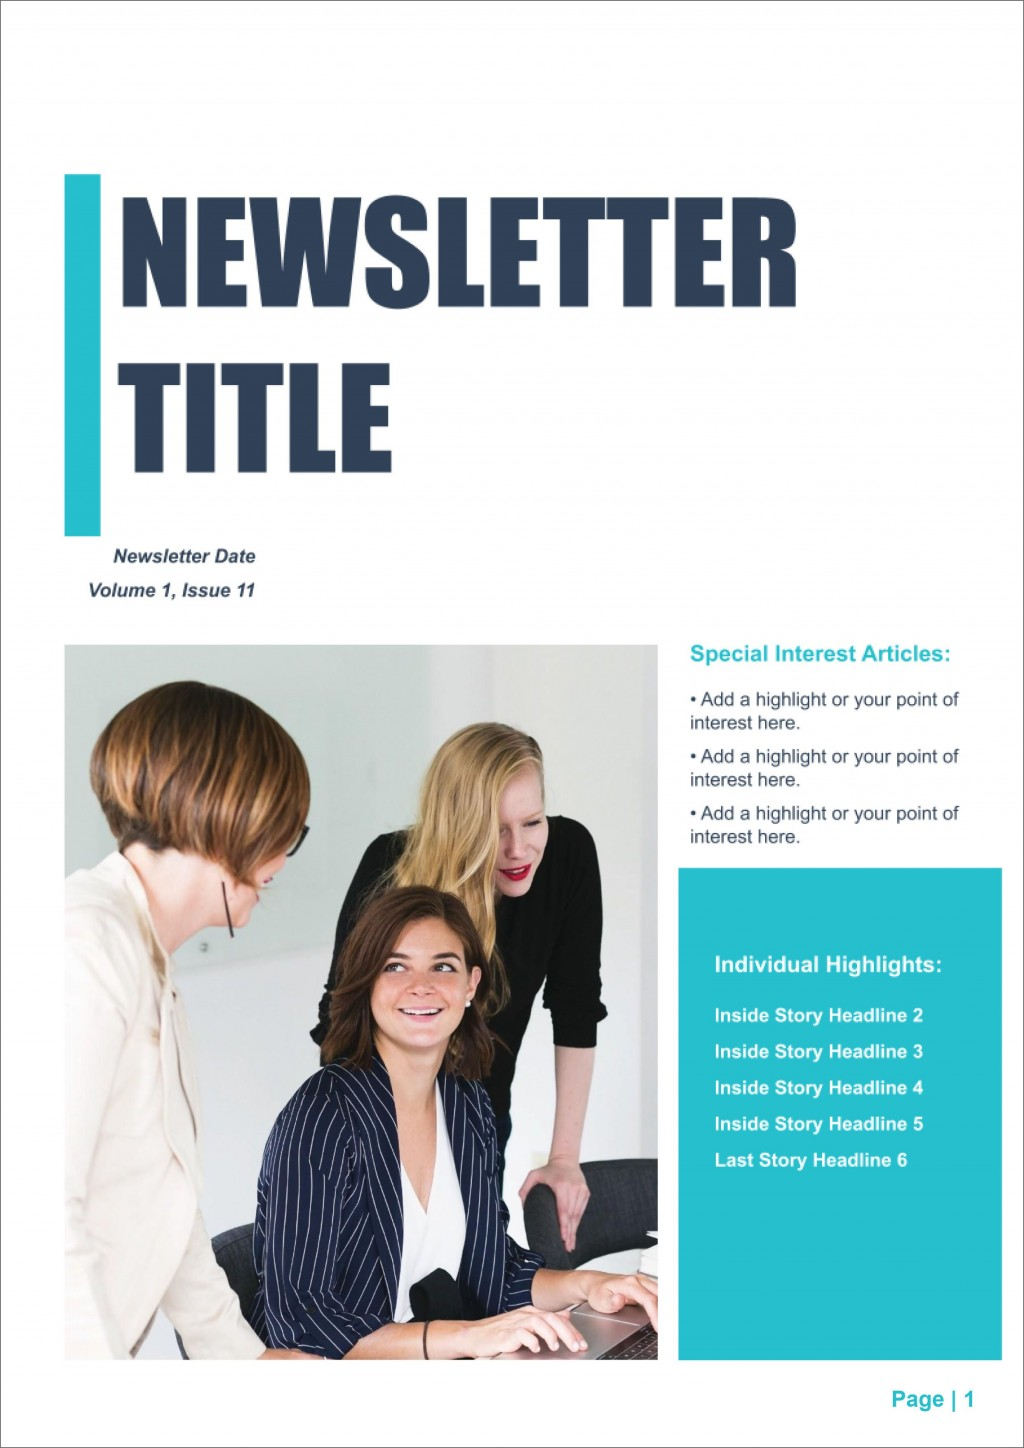 004 Simple High School Newsletter Template Free Download Inspiration Large